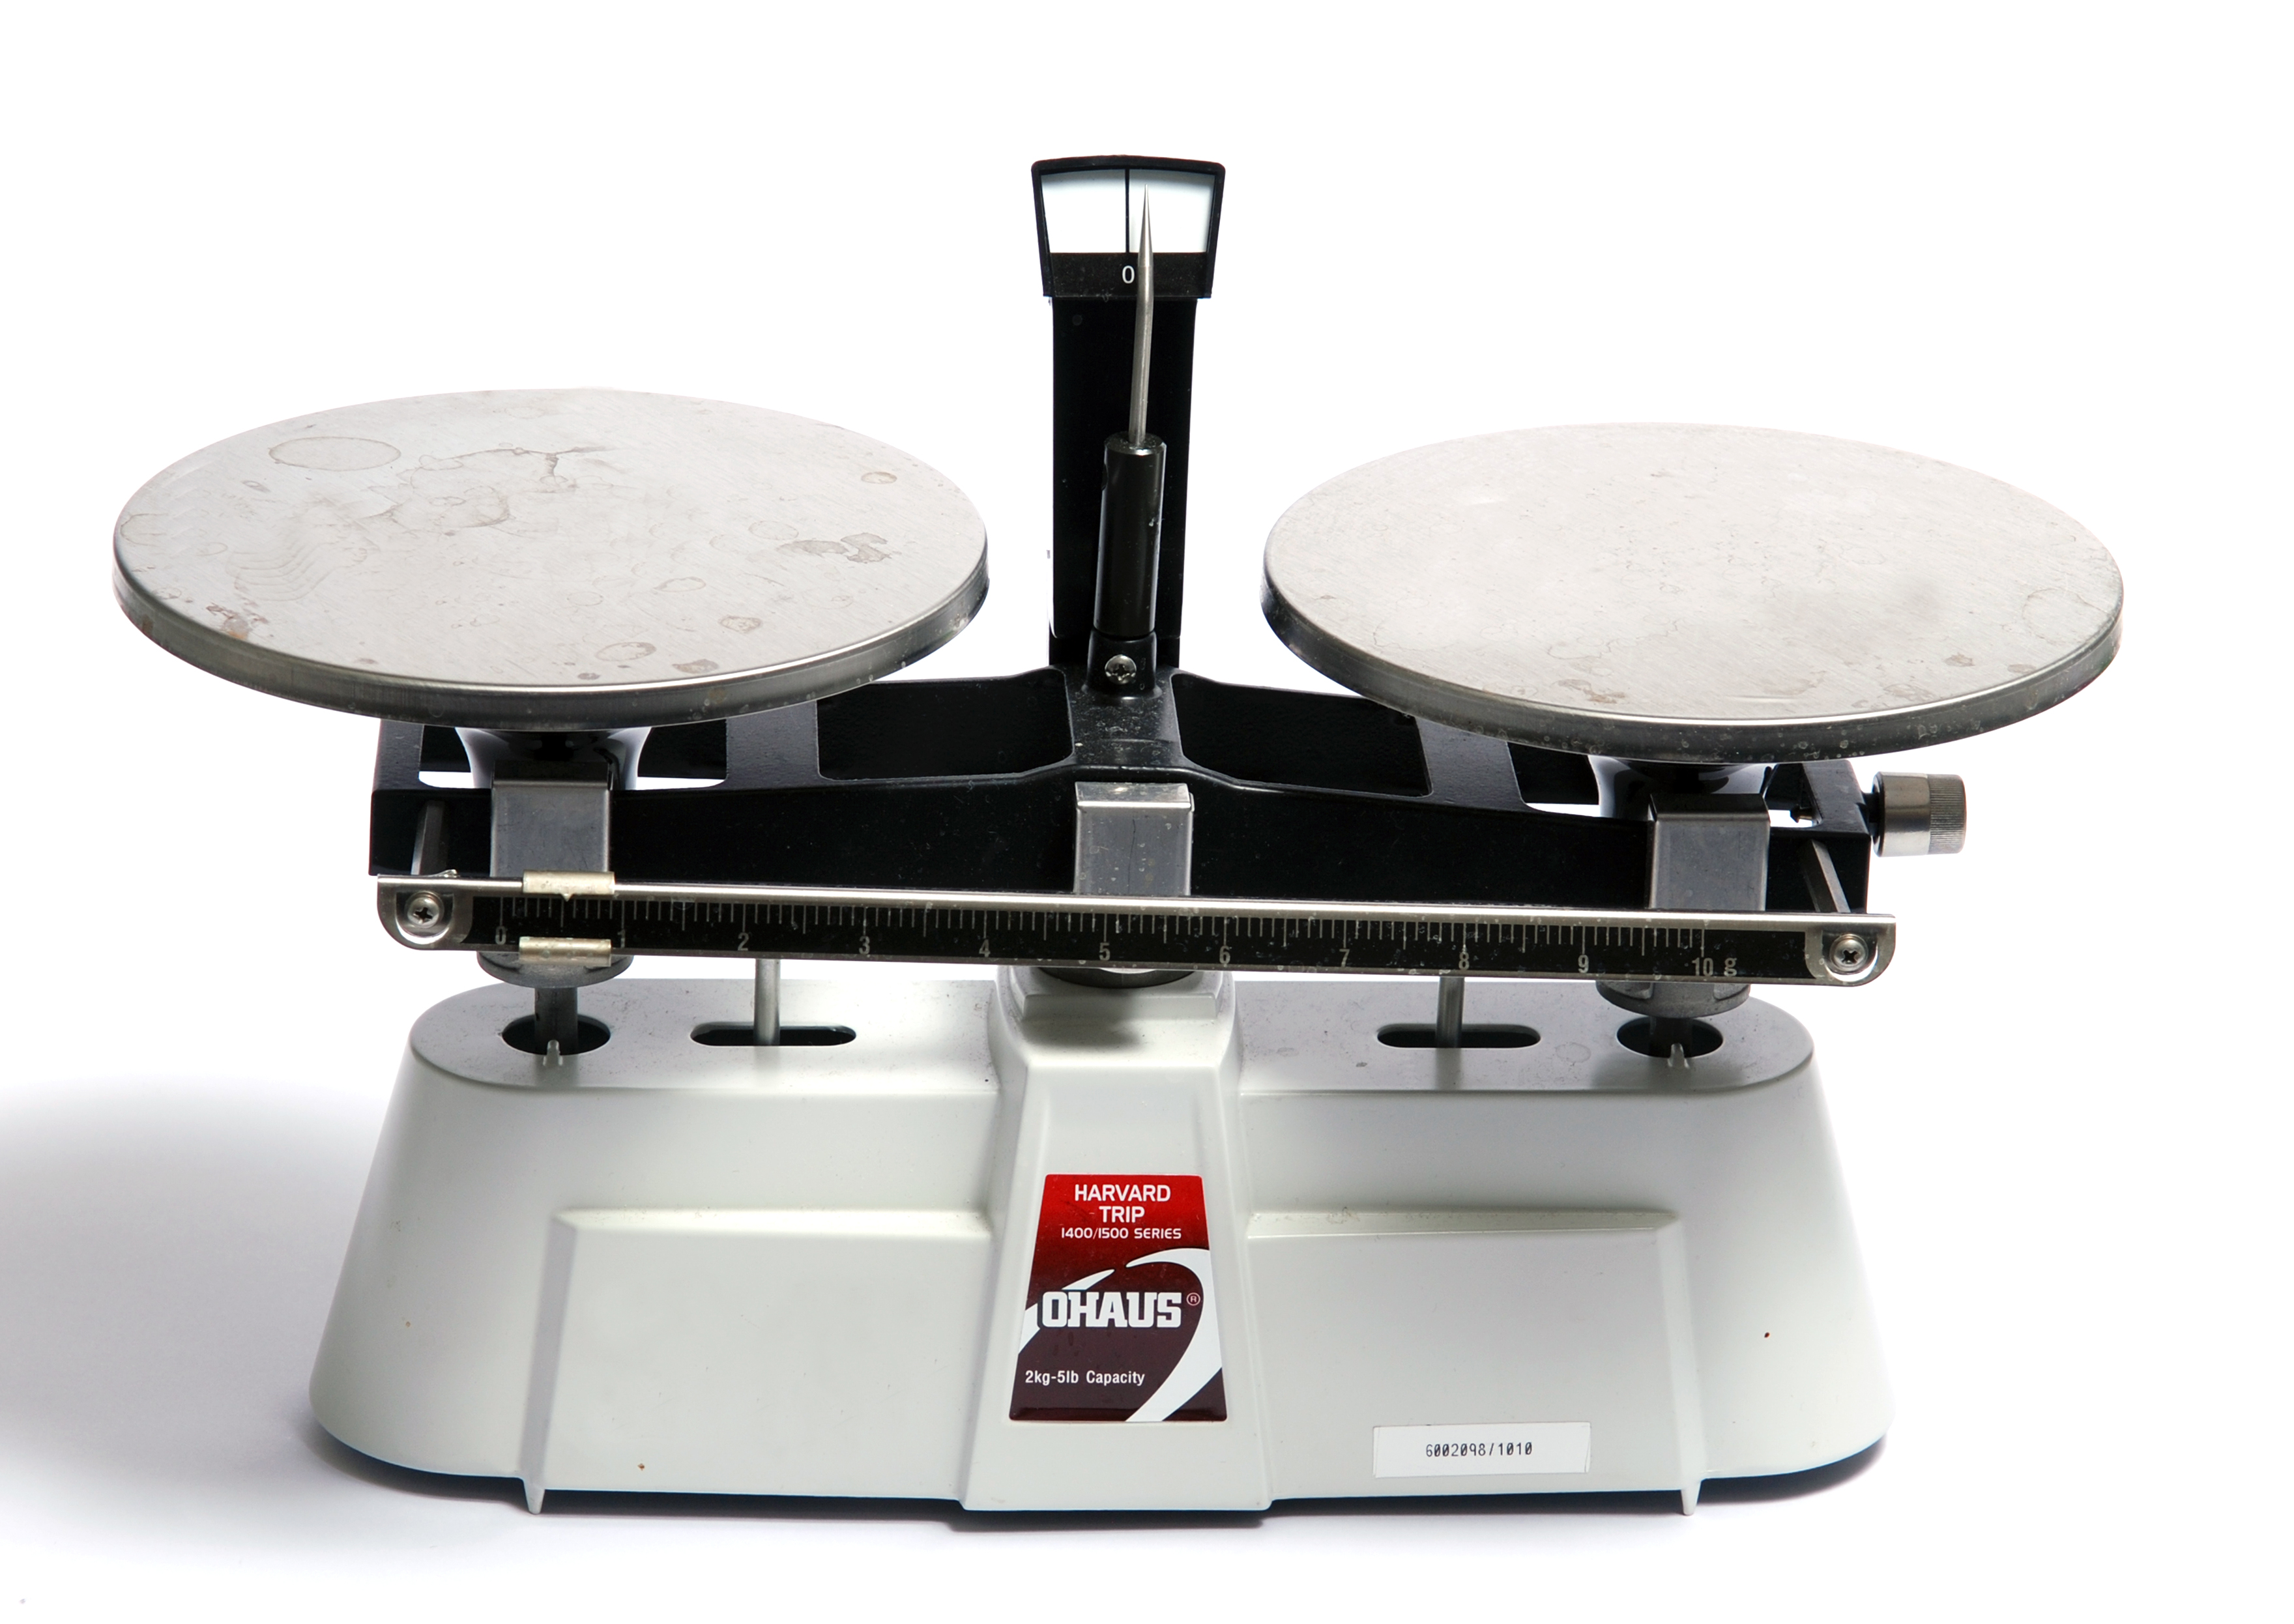 File:Simple balance scales-02.jpg - Wikimedia Commons